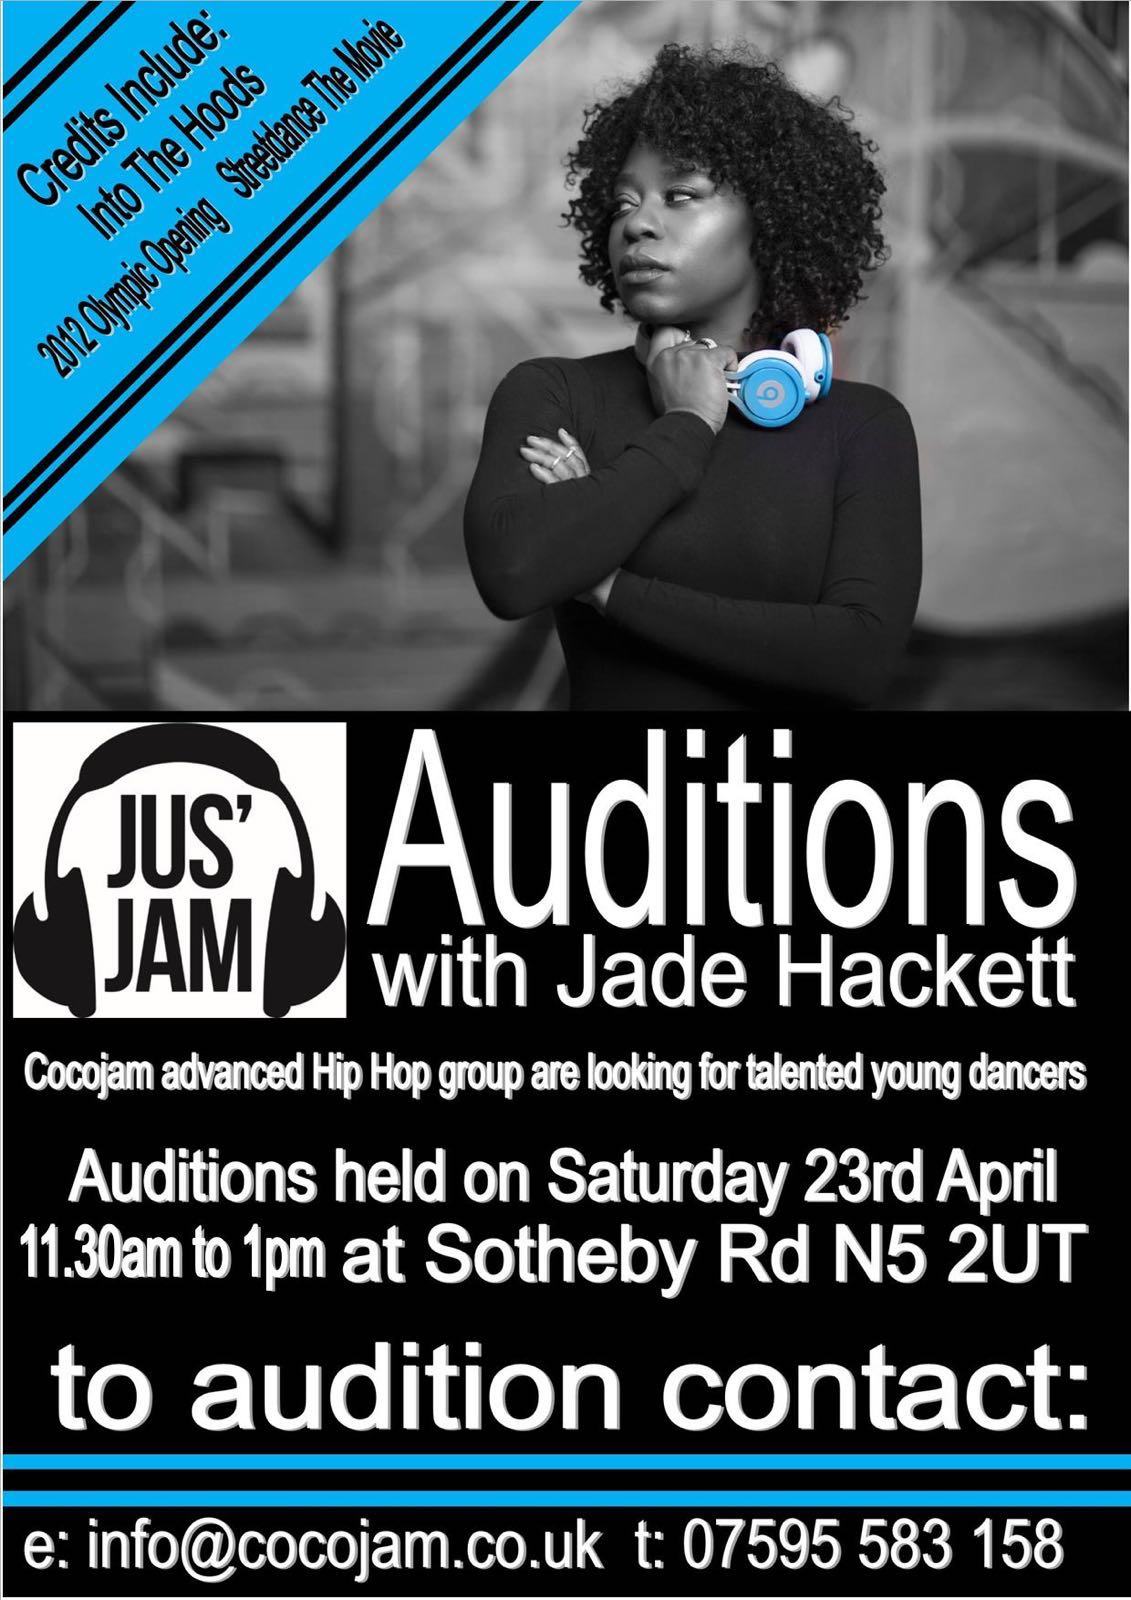 Jus' Jam Auditions!